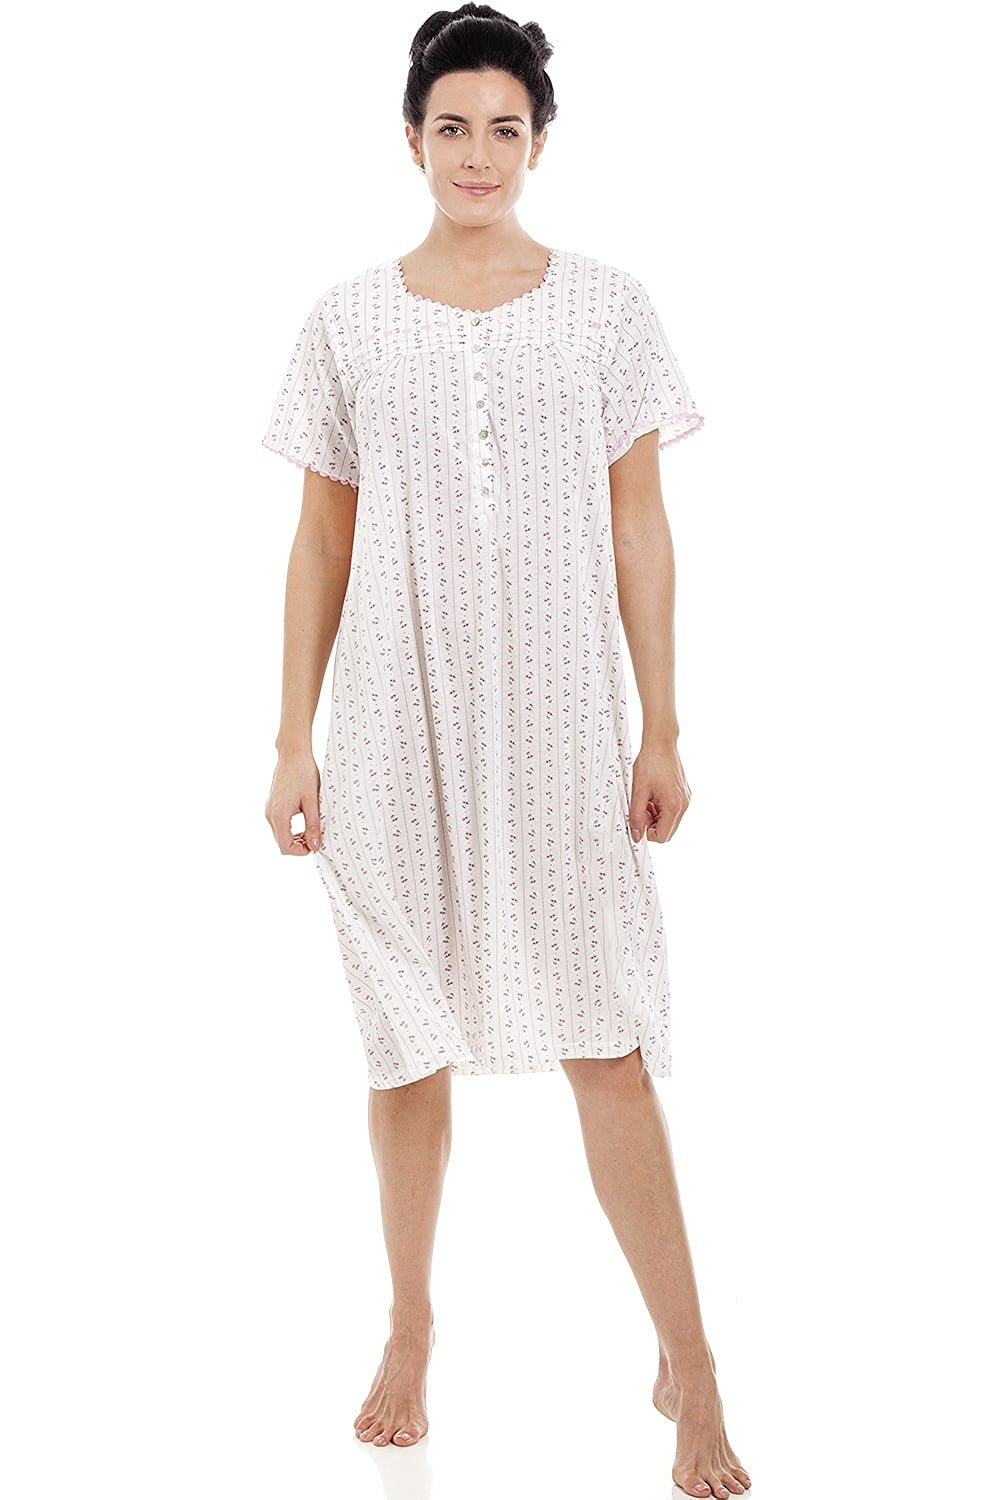 8c199bf184 Get Quotations · Camille Pink   Grey Floral Pinstriped Short Sleeve  Nightdress